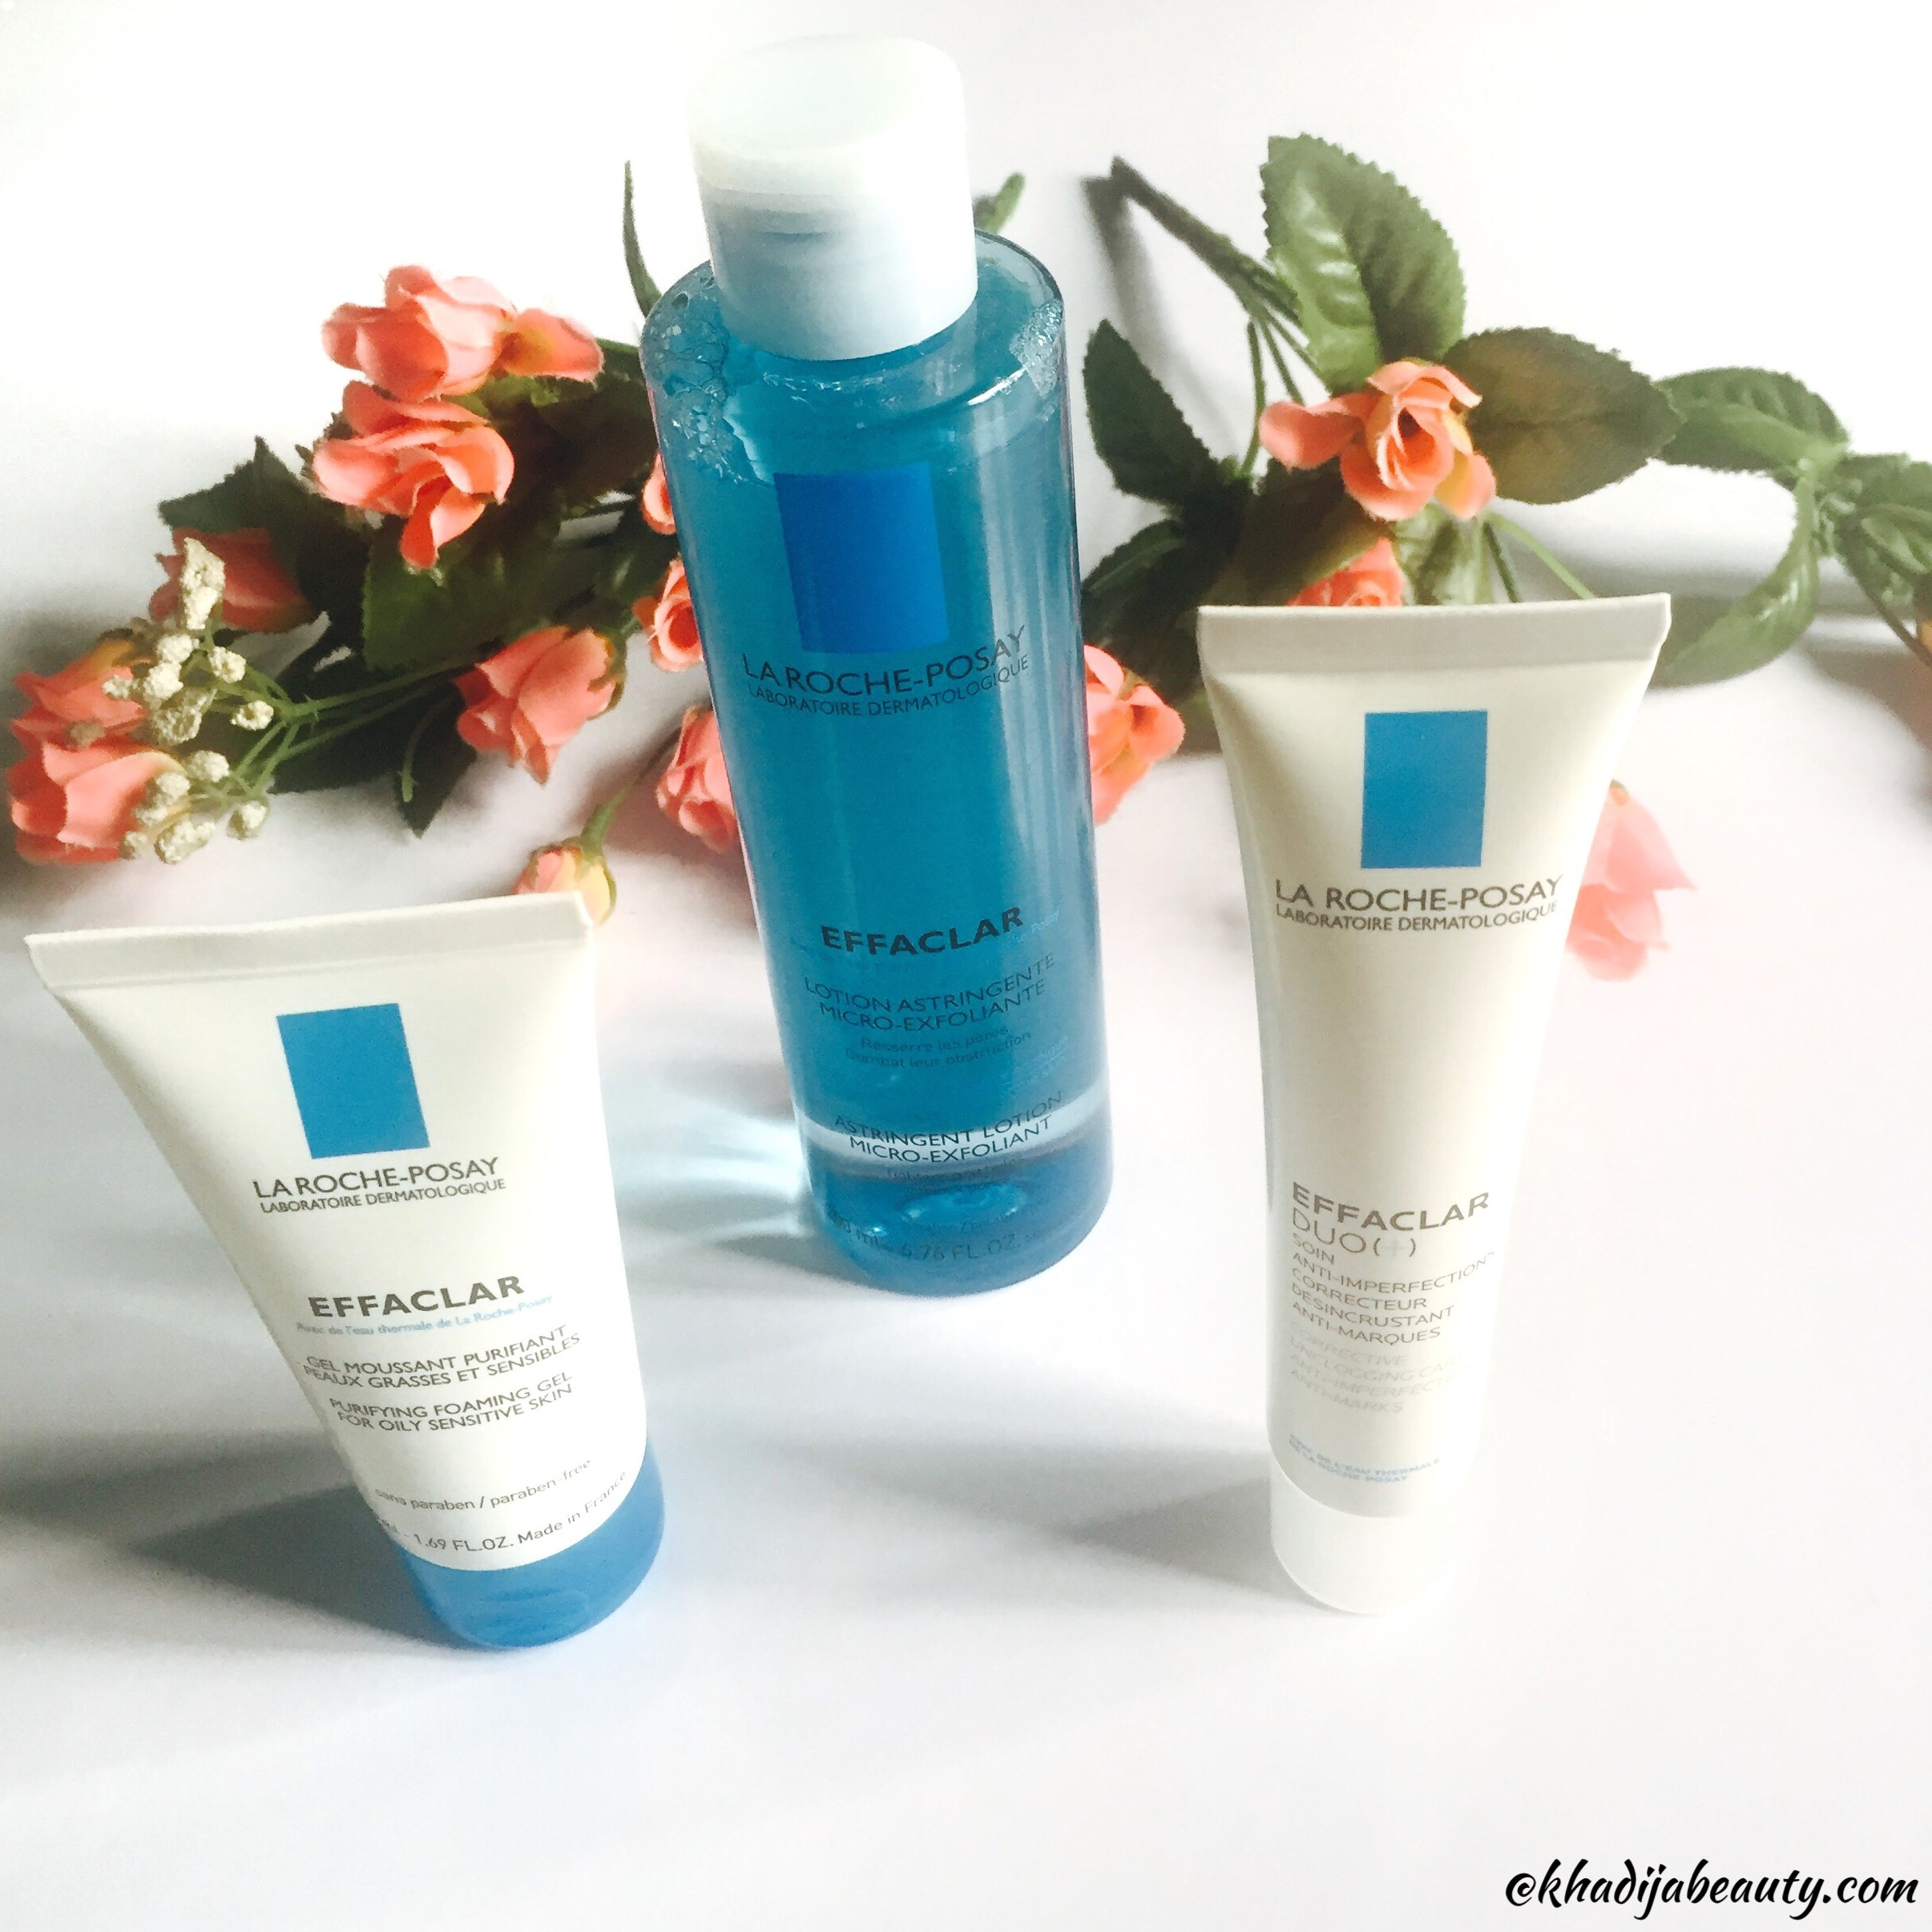 La Roche-Posay Effaclar Purifying Foaming gel, Toner and Effaclar Duo Review